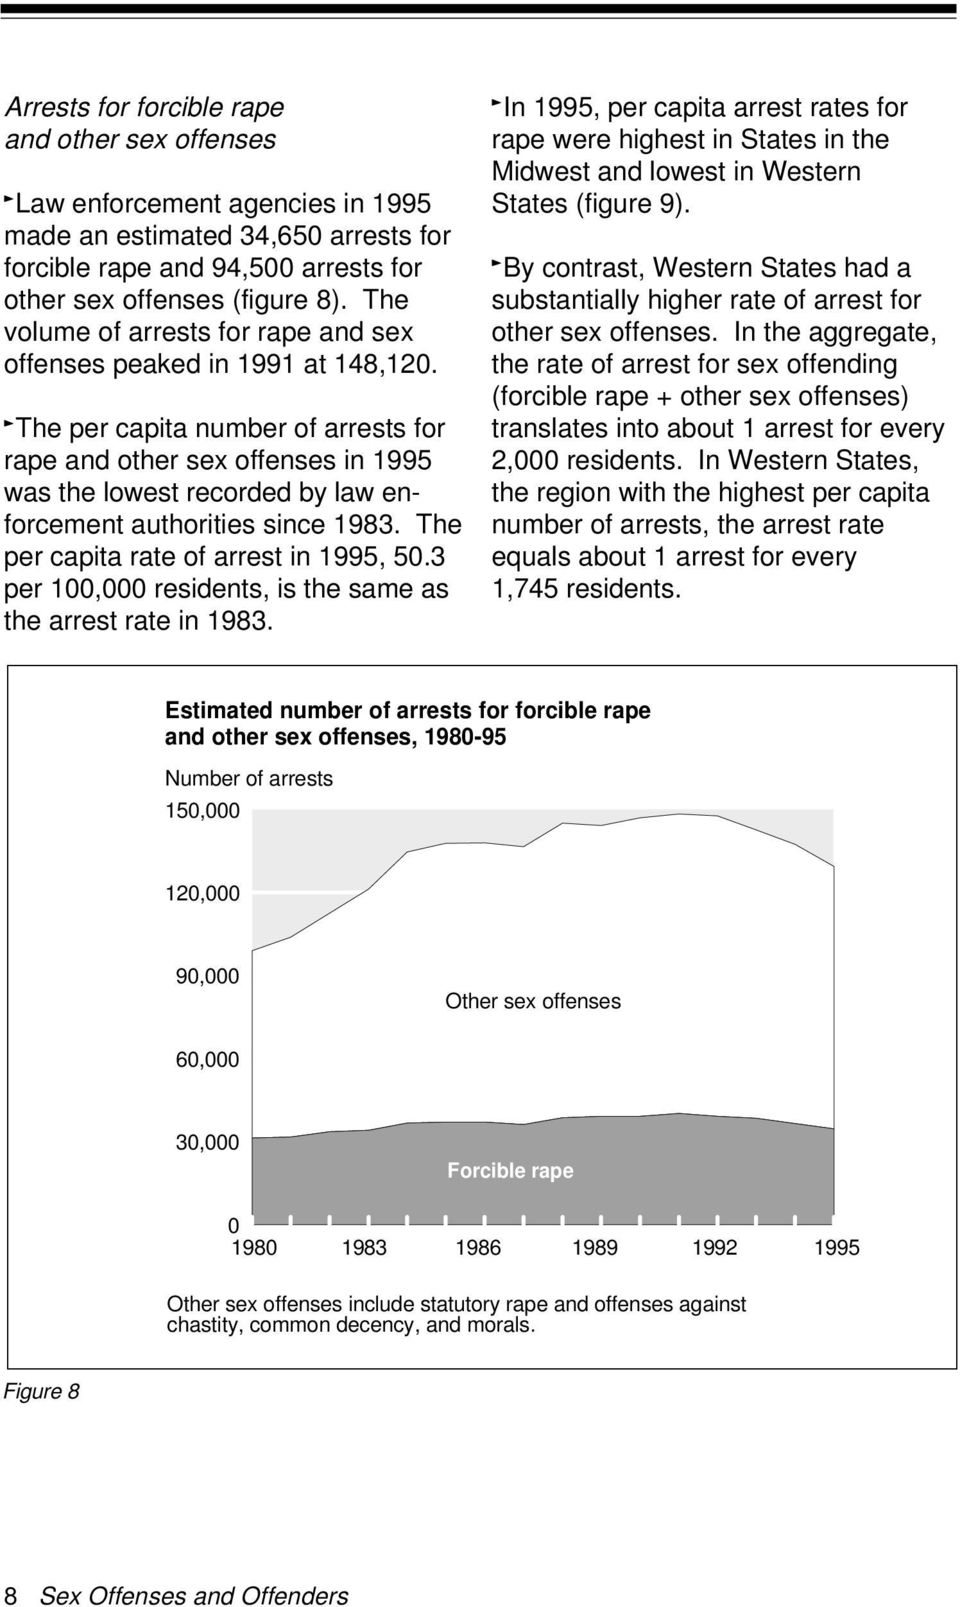 The per capita number of arrests for rape and other sex offenses in 1995 was the lowest recorded by law enforcement authorities since 1983. The per capita rate of arrest in 1995, 50.